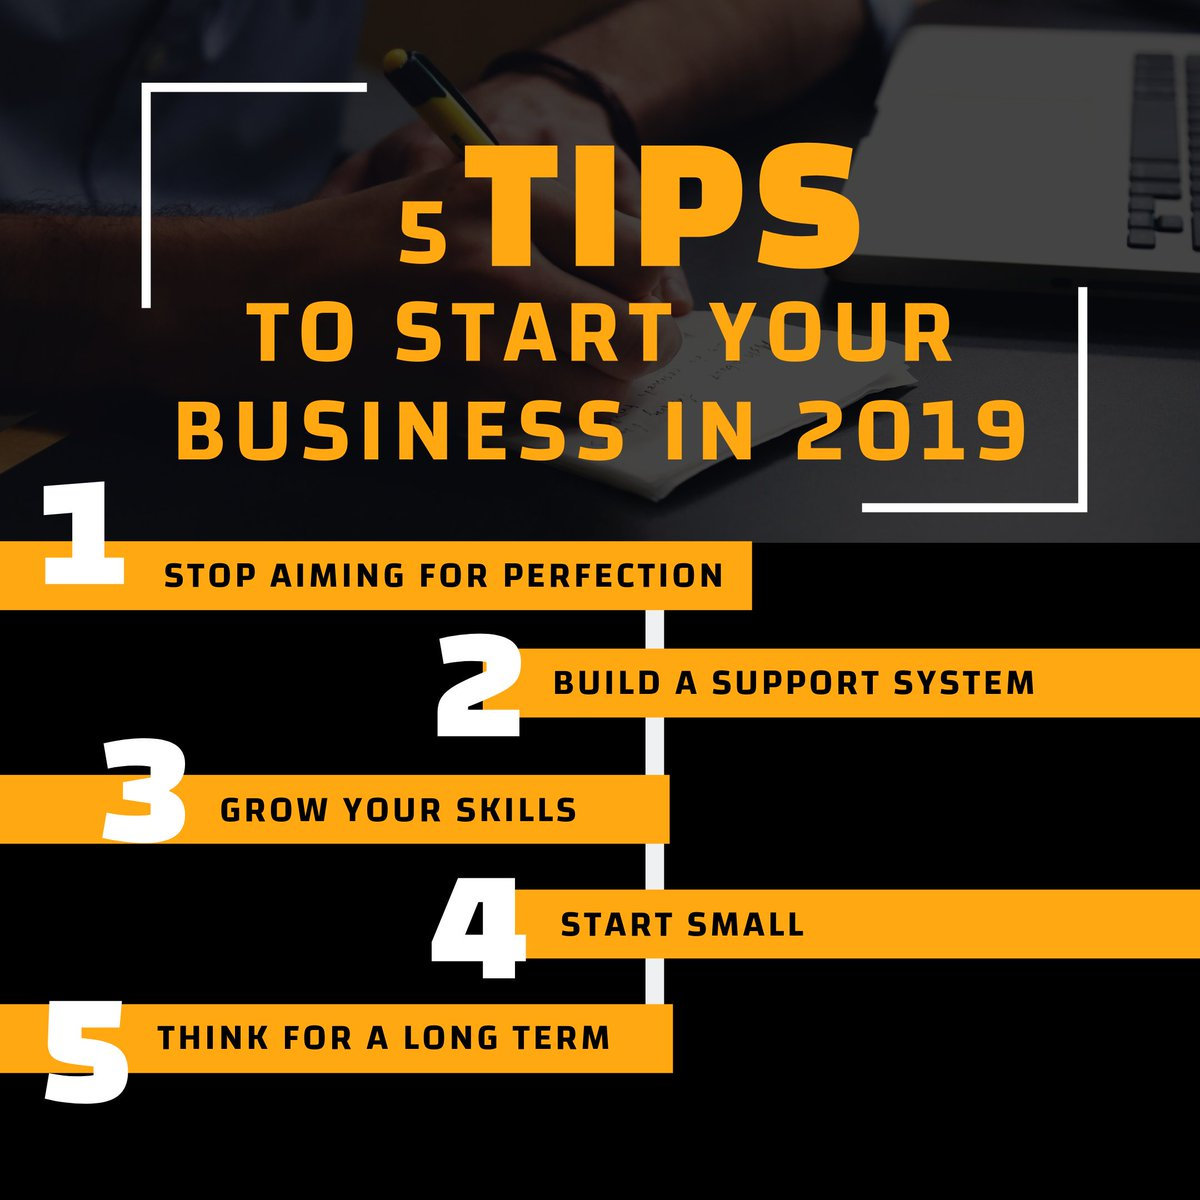 "Launching Your Business in 2019? Consider These 5 Tips"" by Young Entrepreneur Council . .  https://www. inc.com/young-entrepre neur-council/launching-your-business-in-2019-consider-these-5-tips.html   …  . .  #entrepreneurtips #codearmy #startup #leanstartup #innovation #lsm #leanstartupmachine<br>http://pic.twitter.com/LLOQtFwZTT"